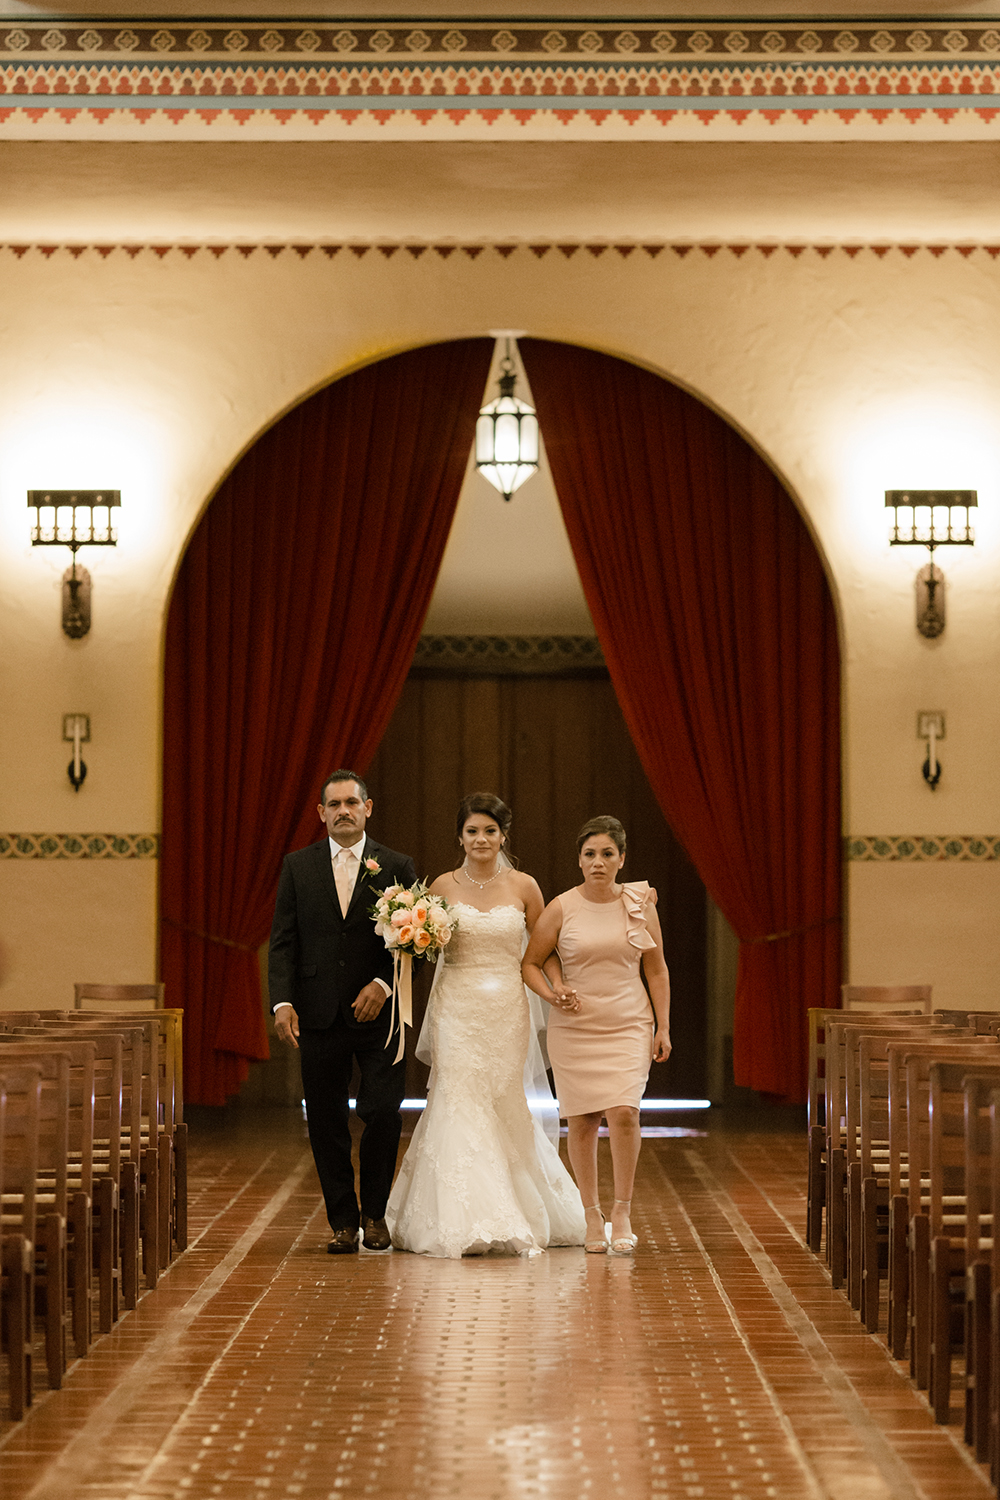 Bride walking down the aisle with both parents during her wedding in Mission Santa Clara de Asís.